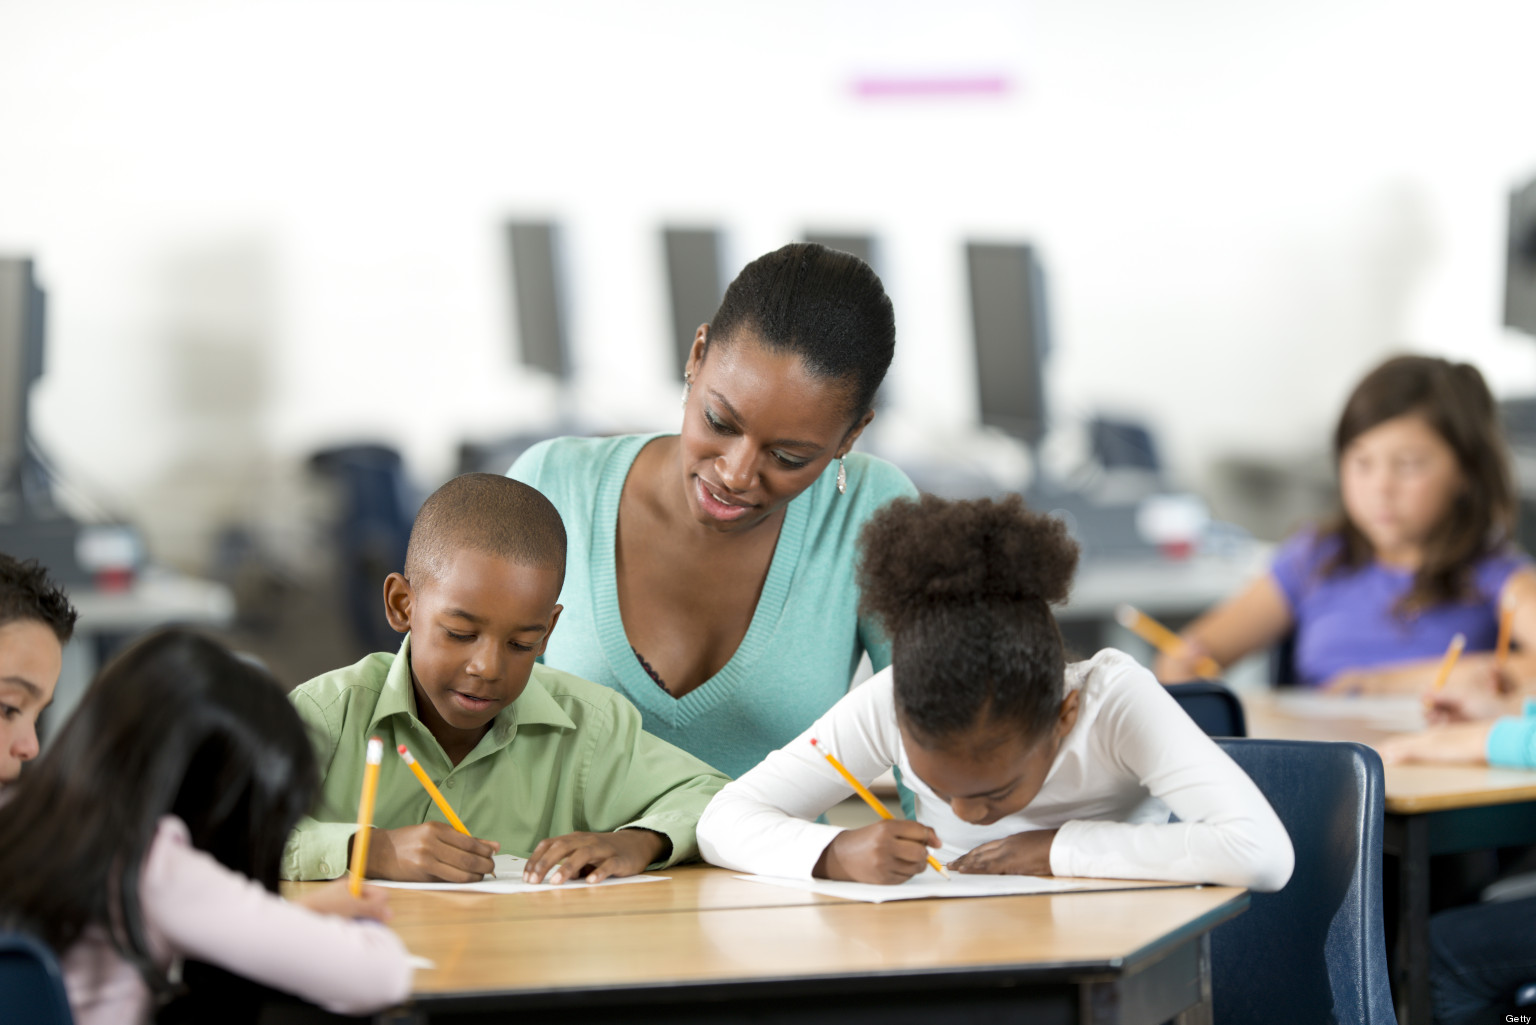 Black Teachers May Not Be Best For Black Students, Study Finds